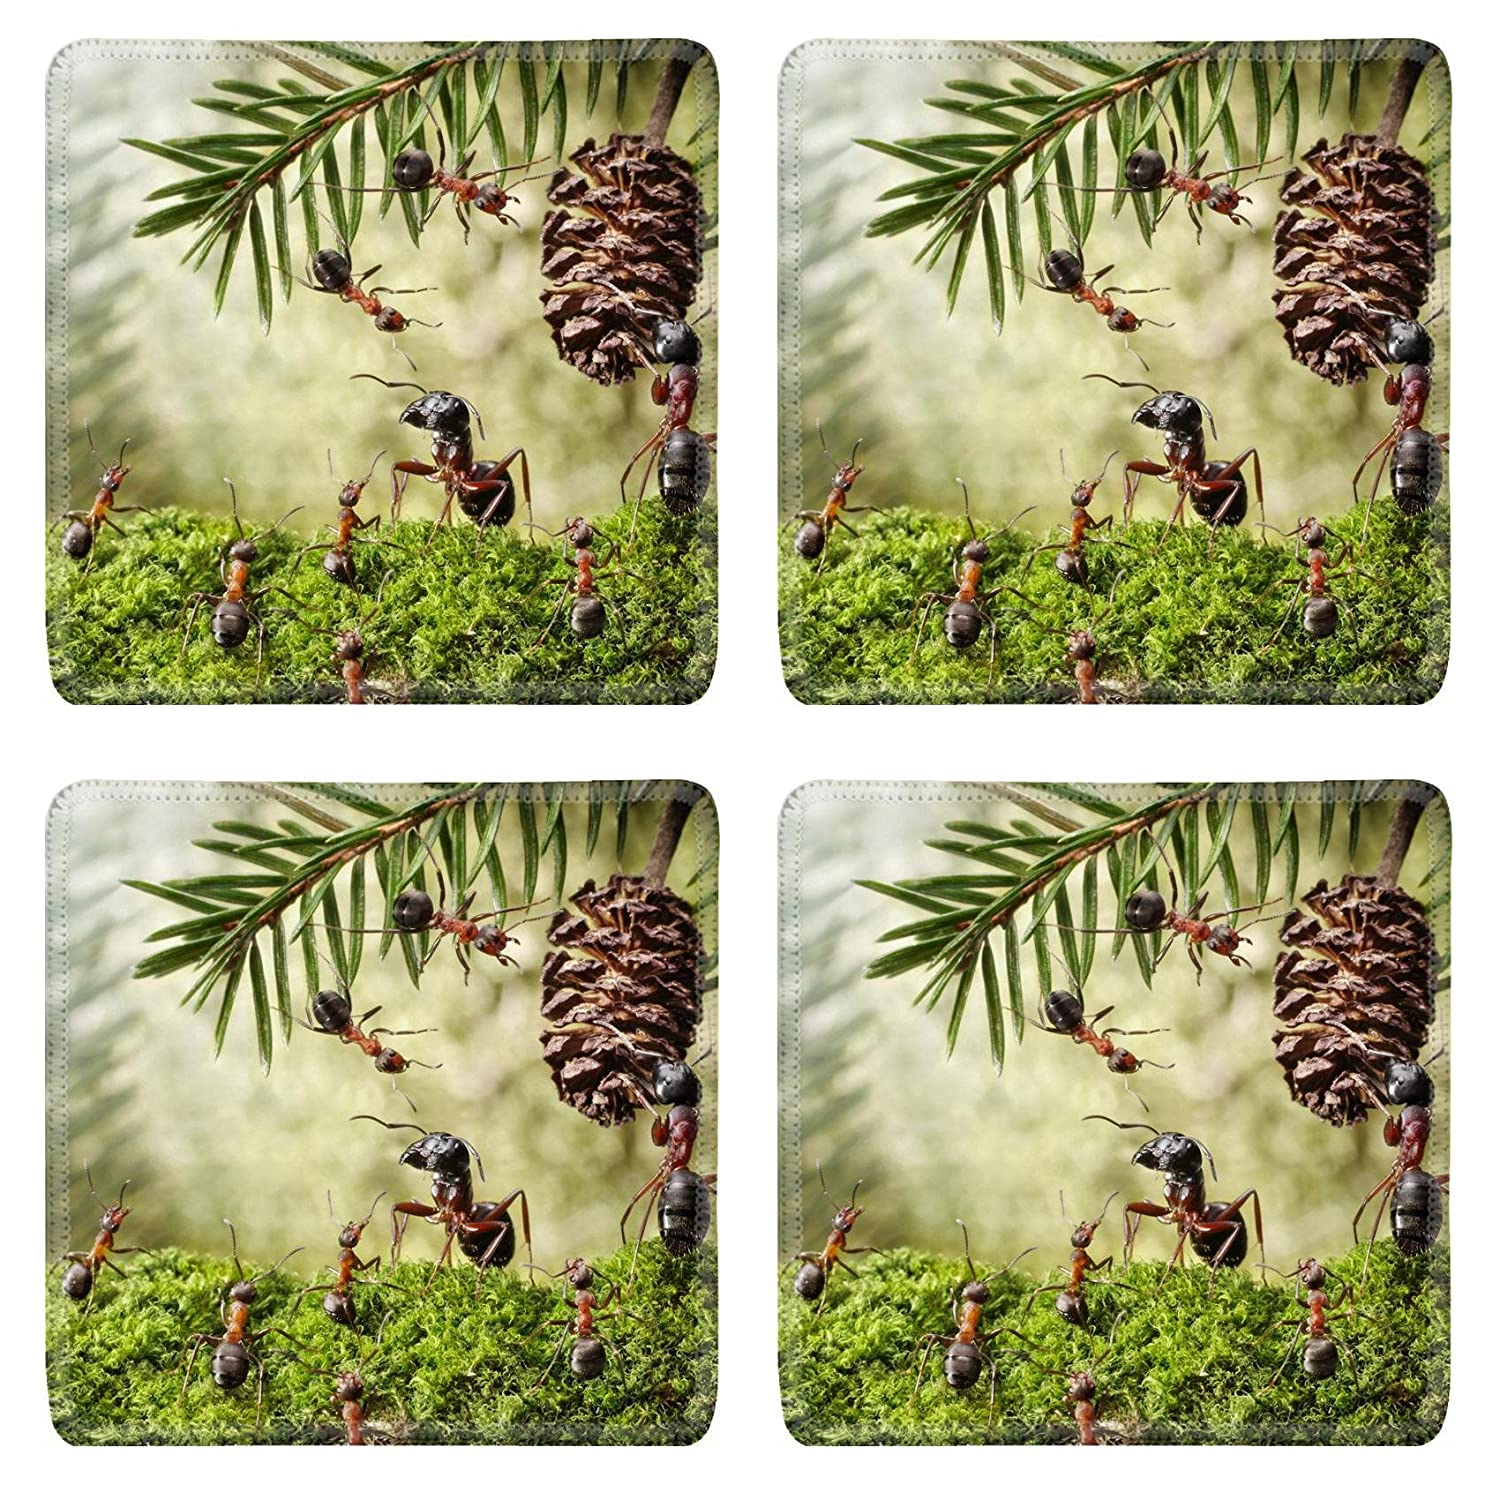 MSD Square Coasters Non-Slip Natural Rubber Desk Coasters design: 14565741 camponotus quarrel with formica for cone ant stories